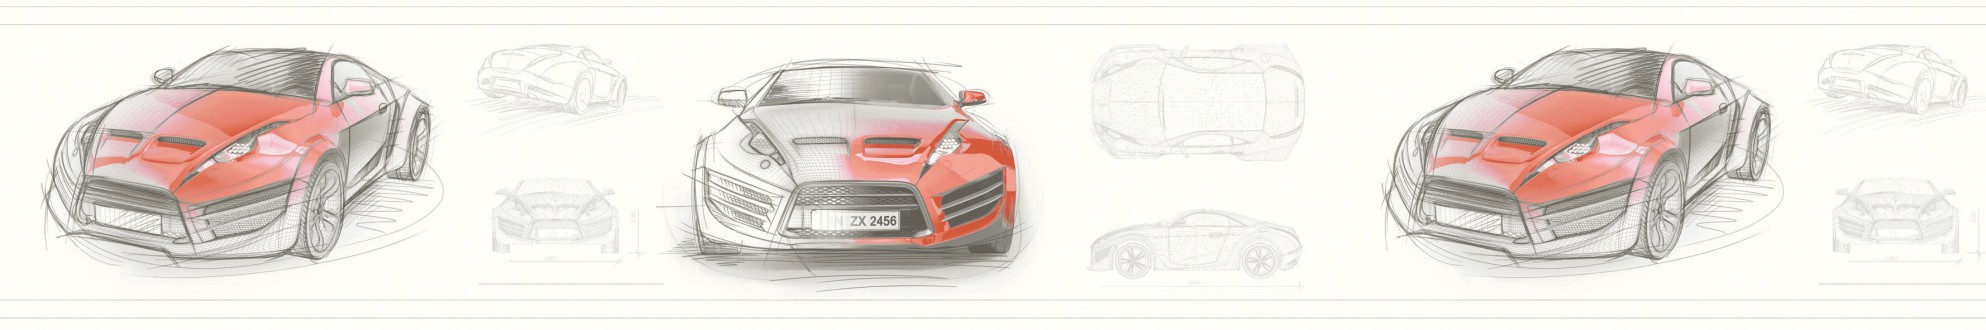 Cenefa bocetos de coches tuning rojo teja Sketches 341808